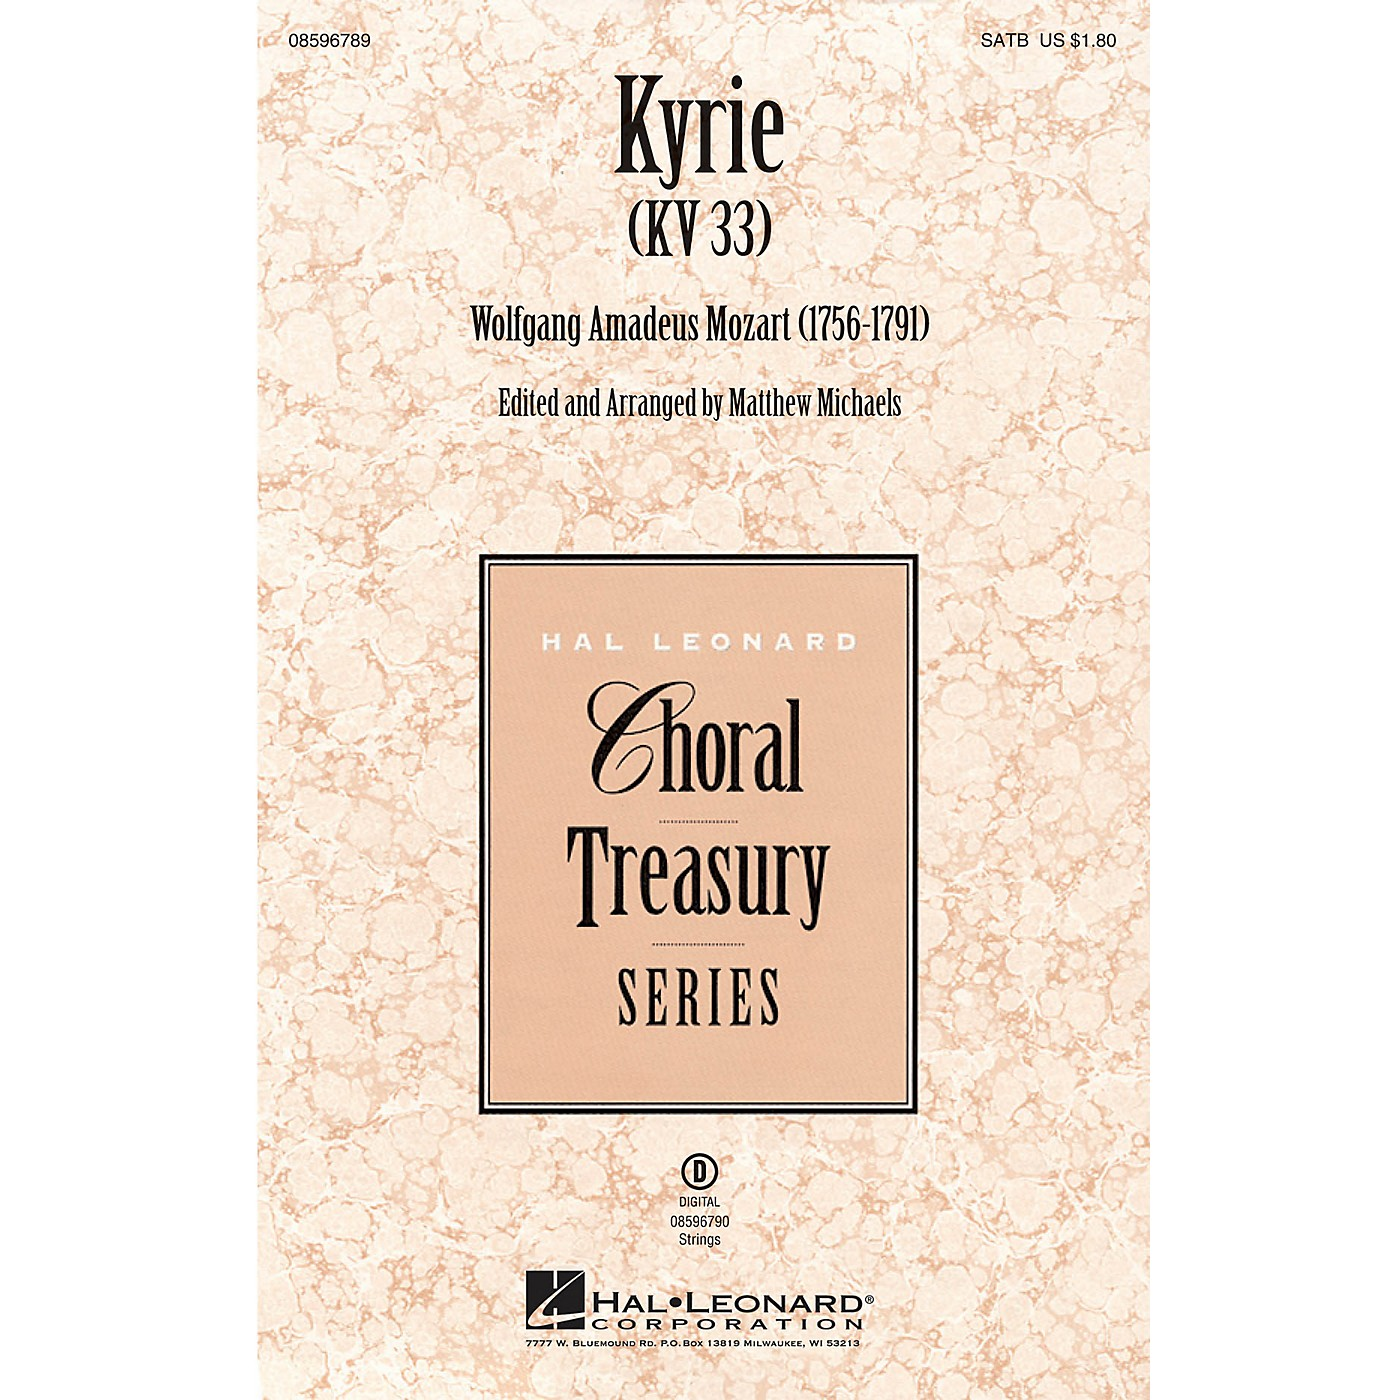 Hal Leonard Kyrie (KV33) SATB arranged by Matthew Michaels thumbnail